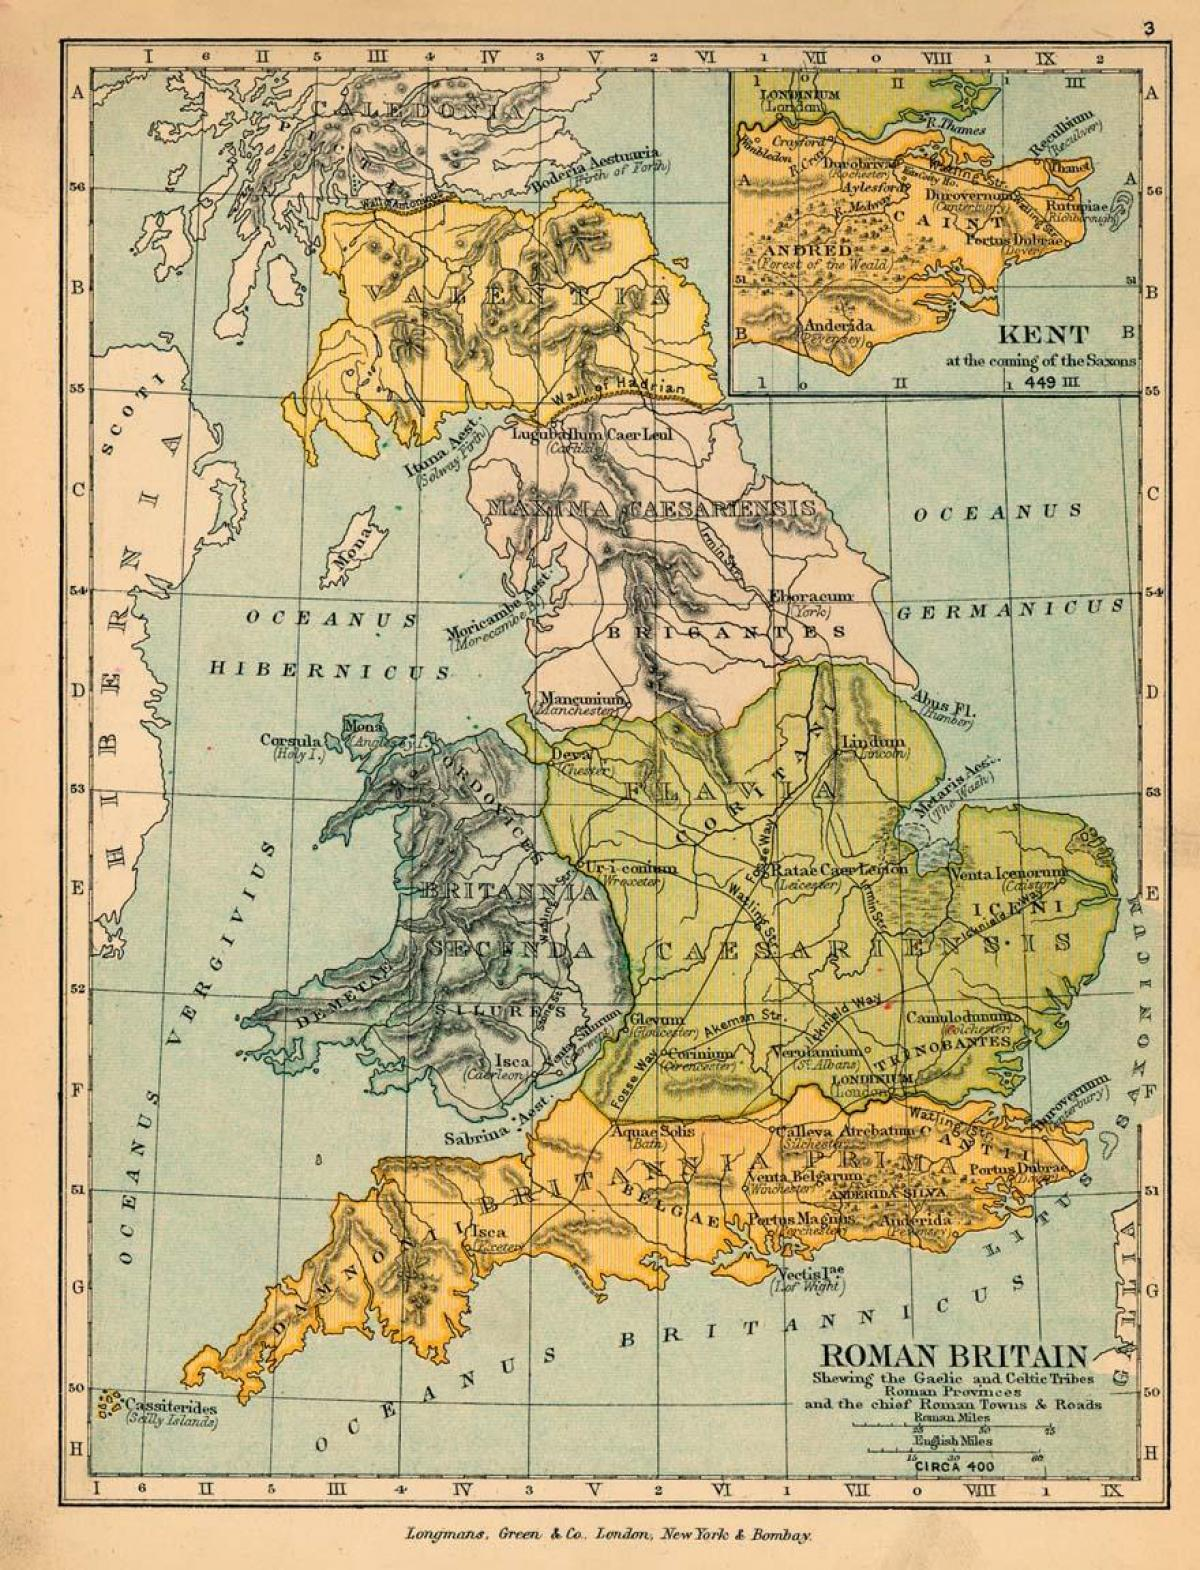 Old Maps Online UK Old Town Maps UK Northern Europe Europe - Buy old maps online